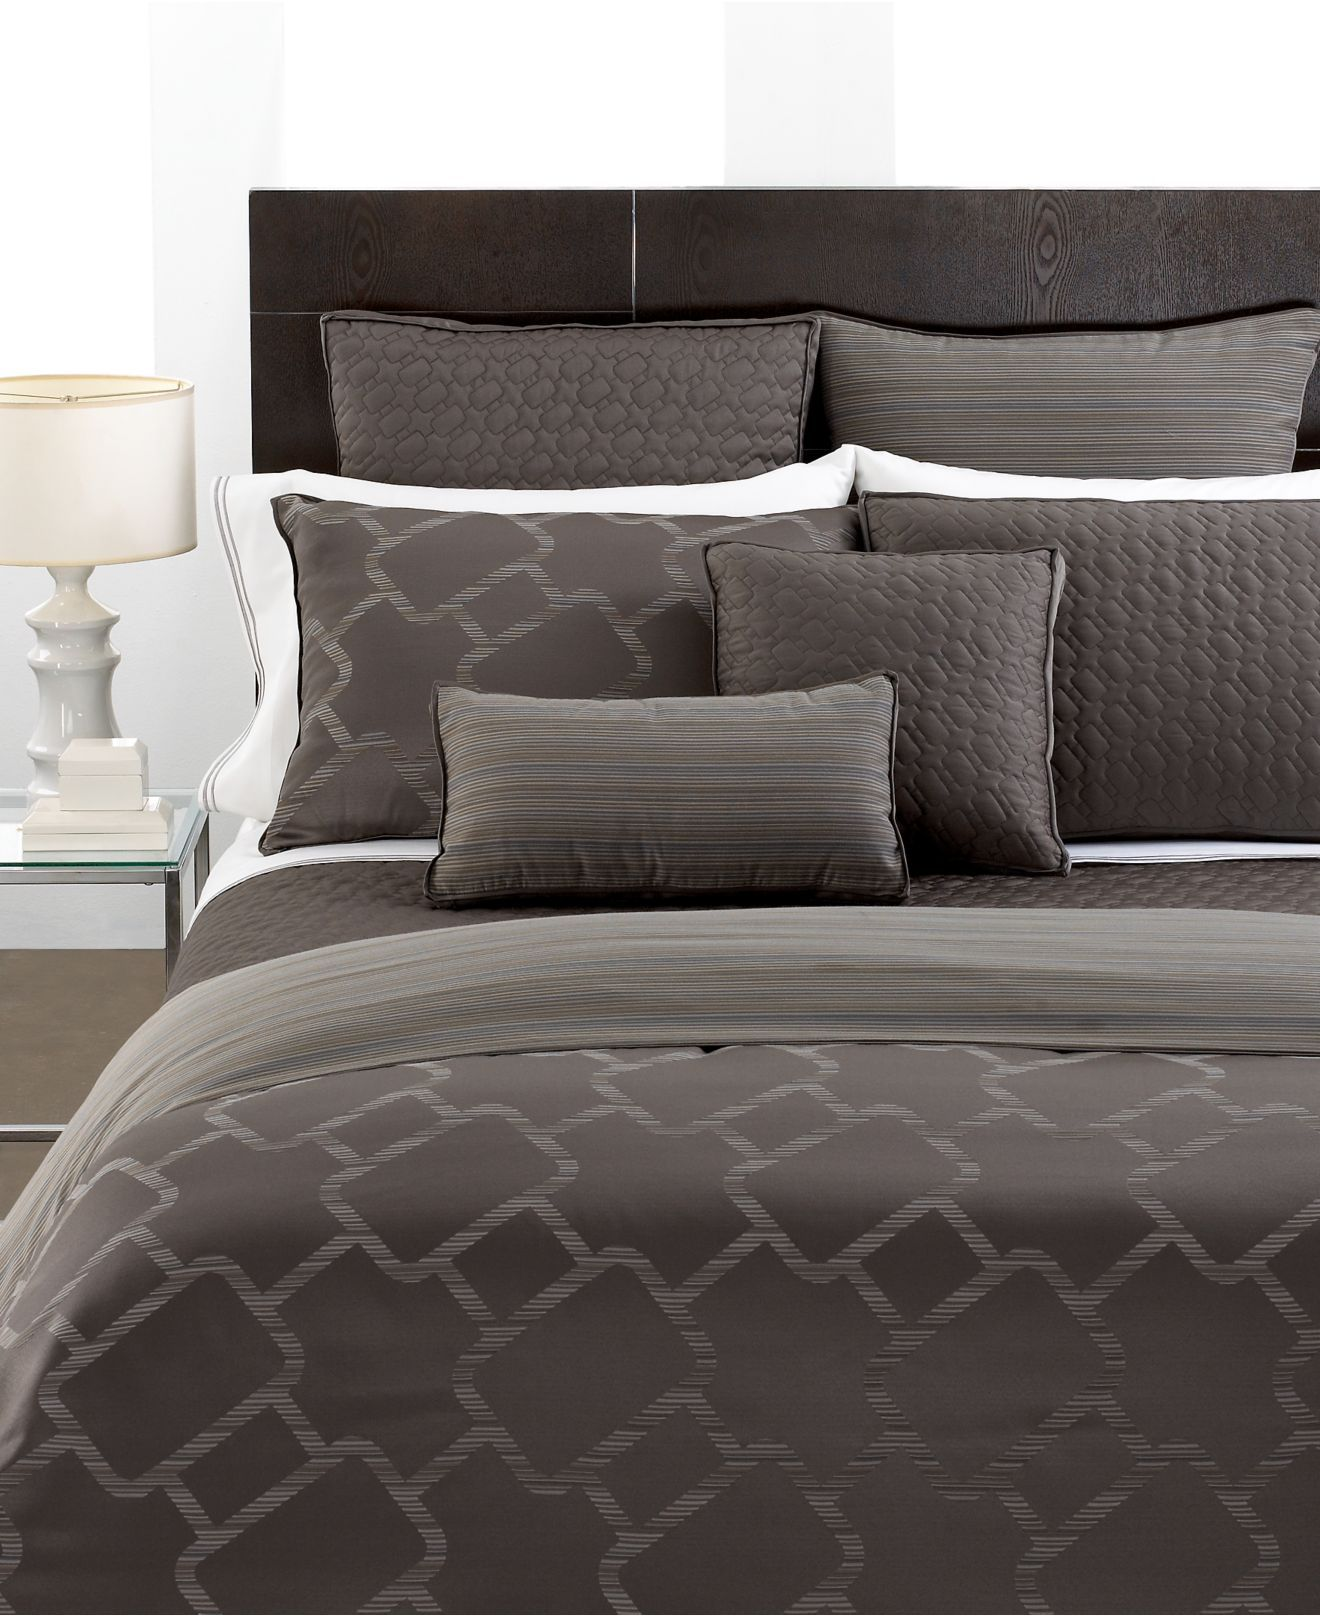 hotel collection bedding gridwork collection  all hotel  - hotel collection bedding gridwork collection  all hotel collection bed bath  bed